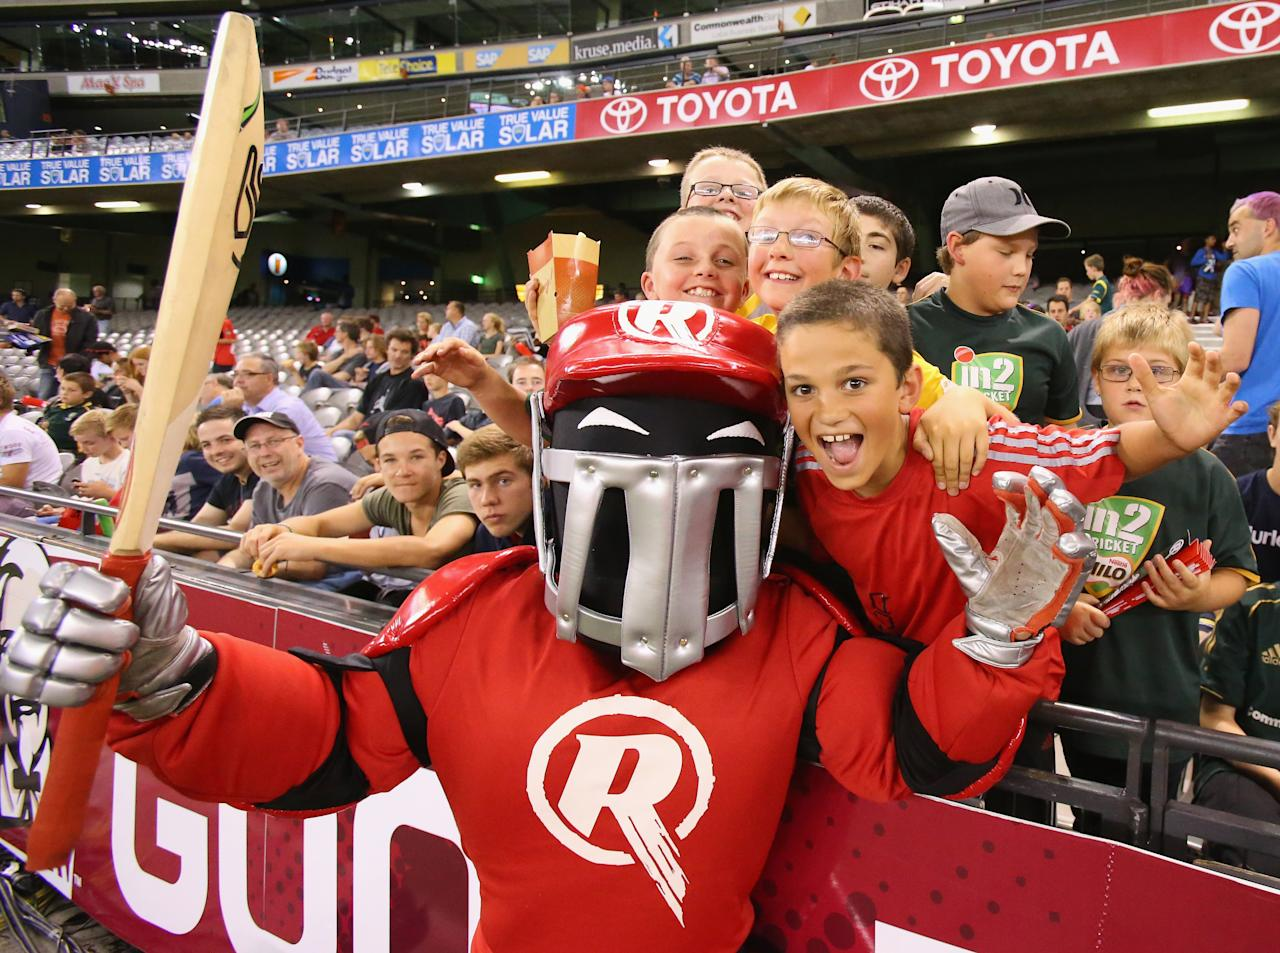 MELBOURNE, AUSTRALIA - DECEMBER 19:  The Renegades mascot poses with fans during the Big Bash League match between the Melbourne Renegades and the Hobart Hurricanes at Etihad Stadium on December 19, 2012 in Melbourne, Australia.  (Photo by Scott Barbour/Getty Images)